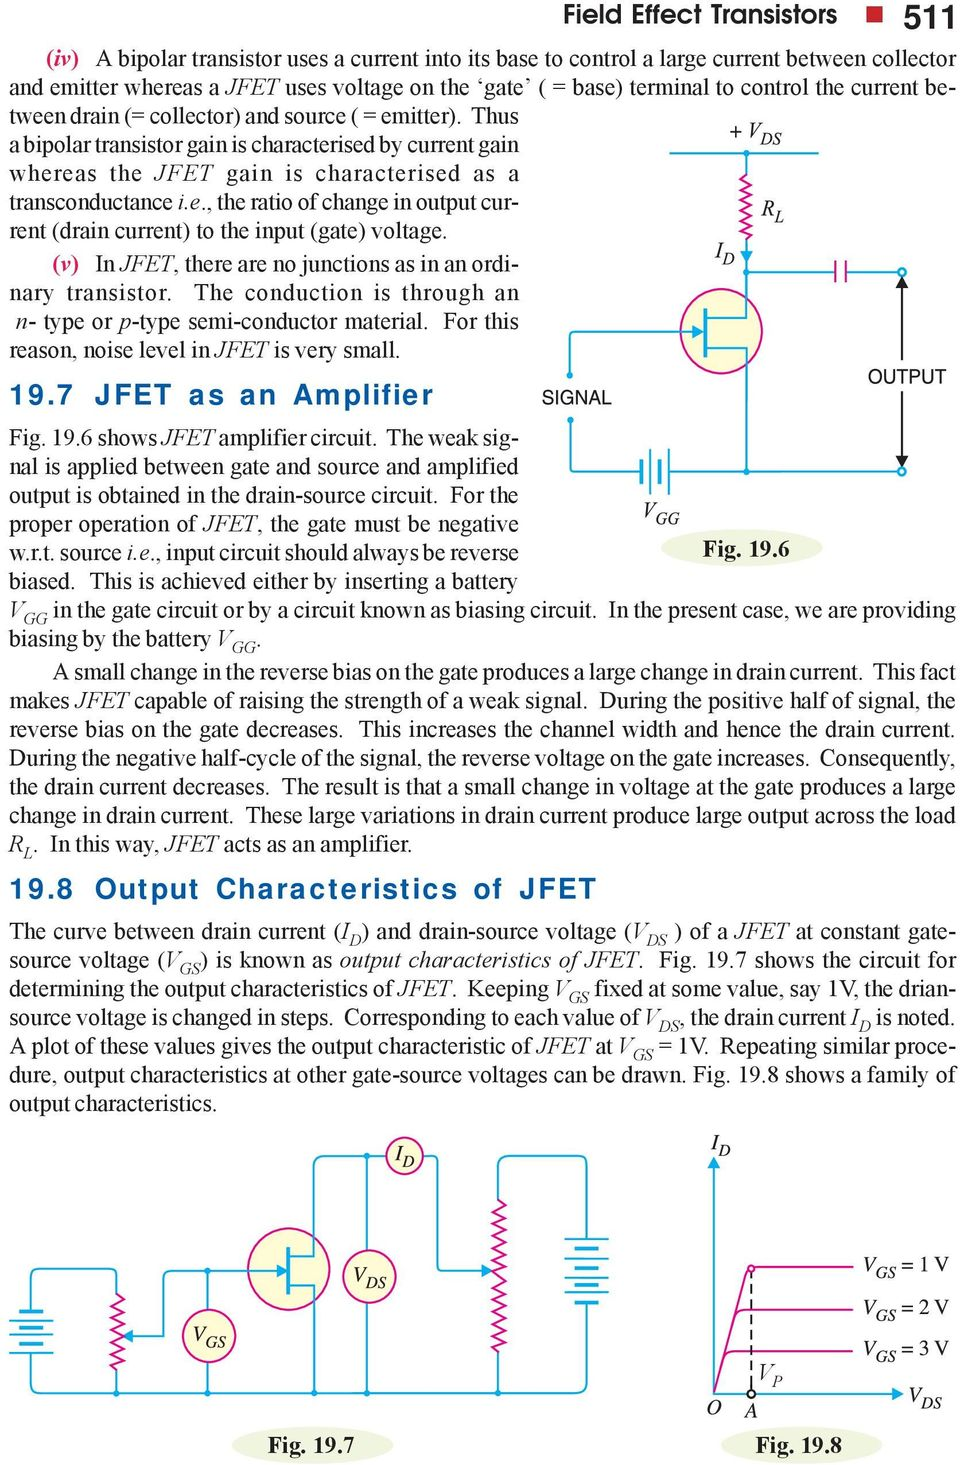 Field Effect Transistors Pdf Zero Or Lowcurrent Voltage Divider For Switch Ie The Ratio Of Change In Output Current Drain To Input